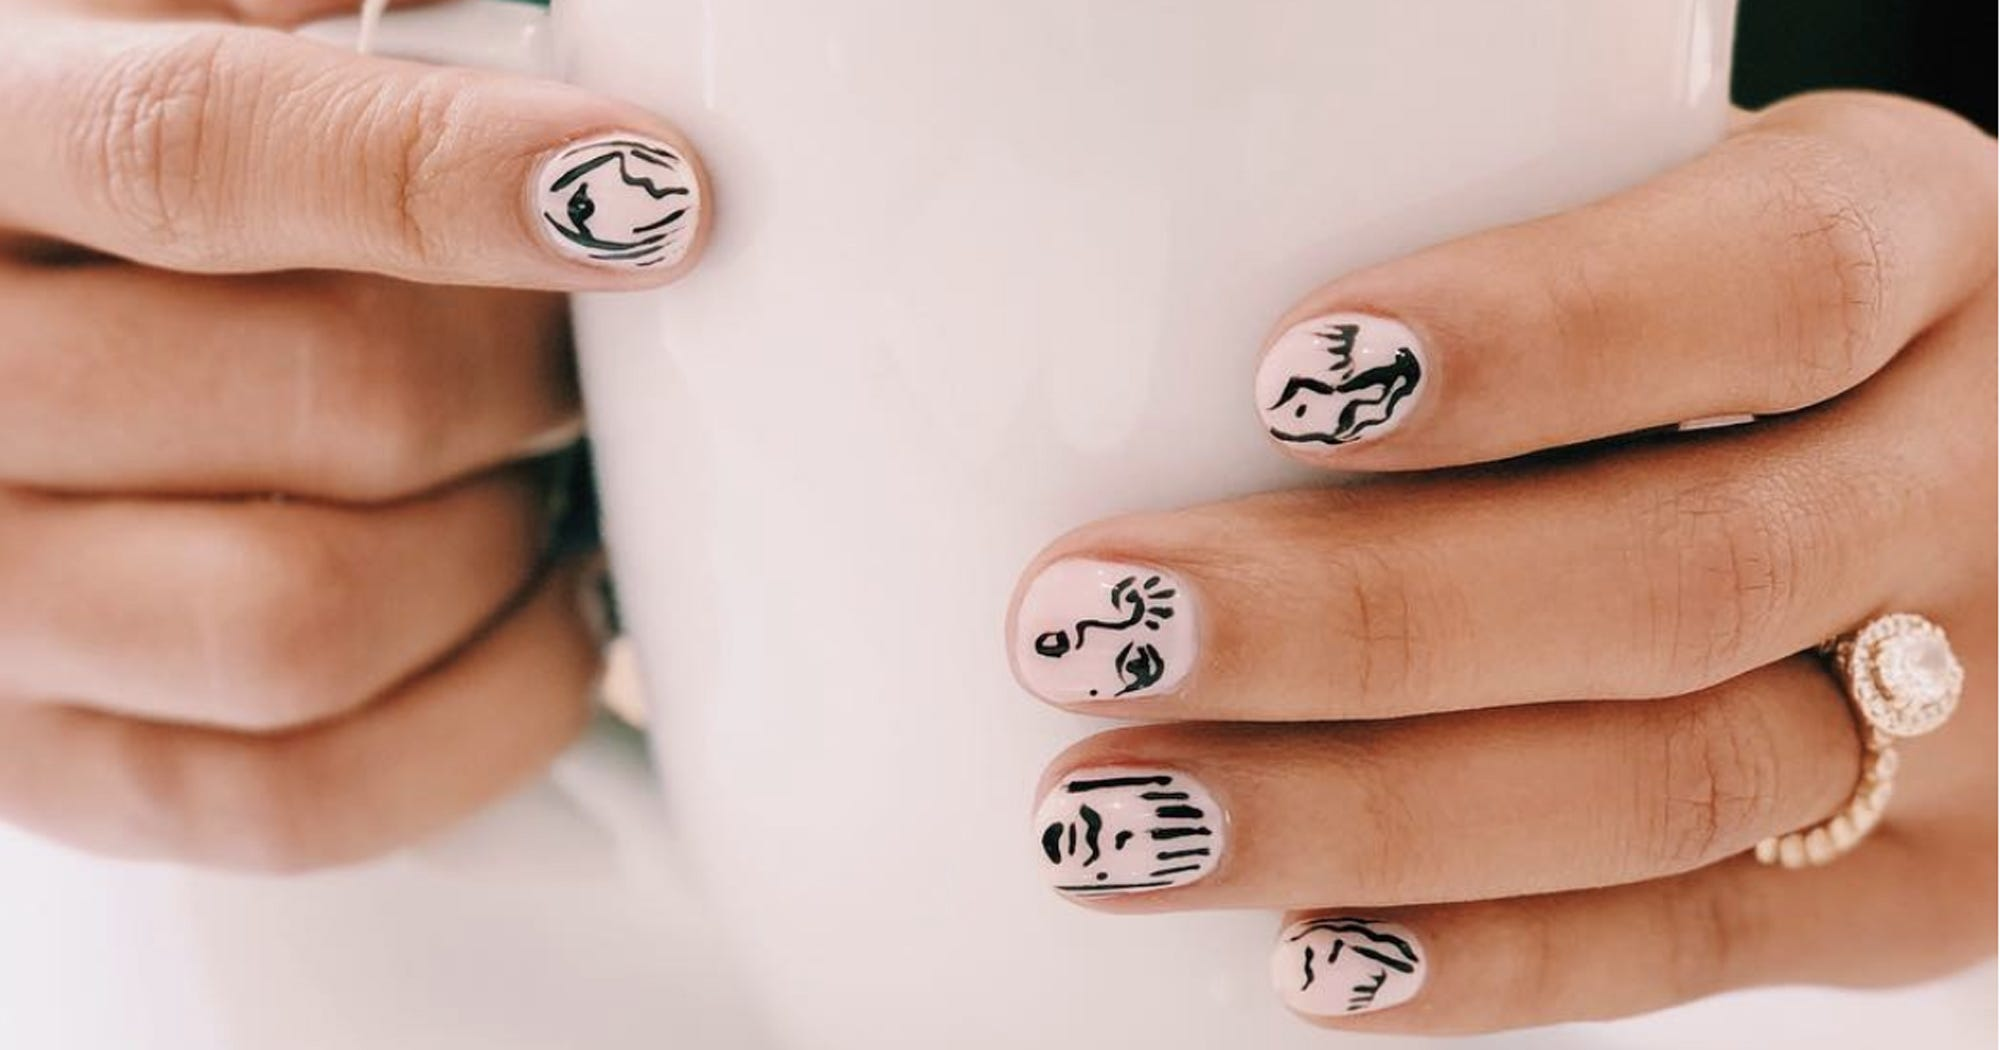 Picasso Inspired Manicures Are Trending On Instagram